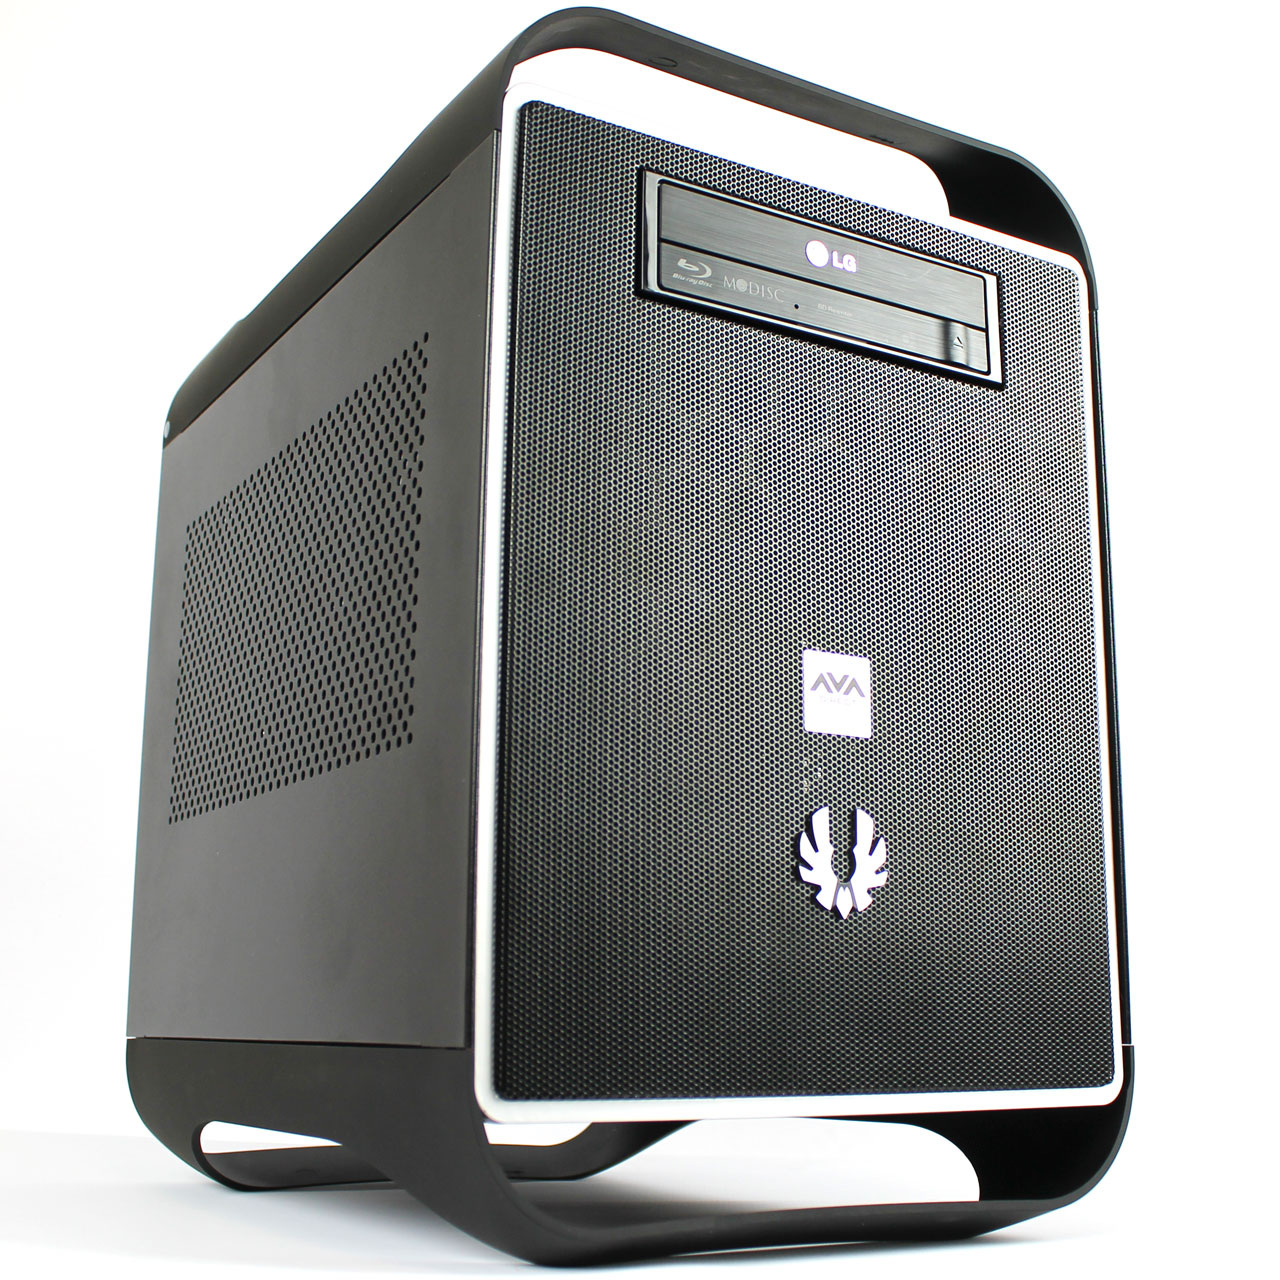 AVADirect Mini Gaming PC: Titan in a Small Package